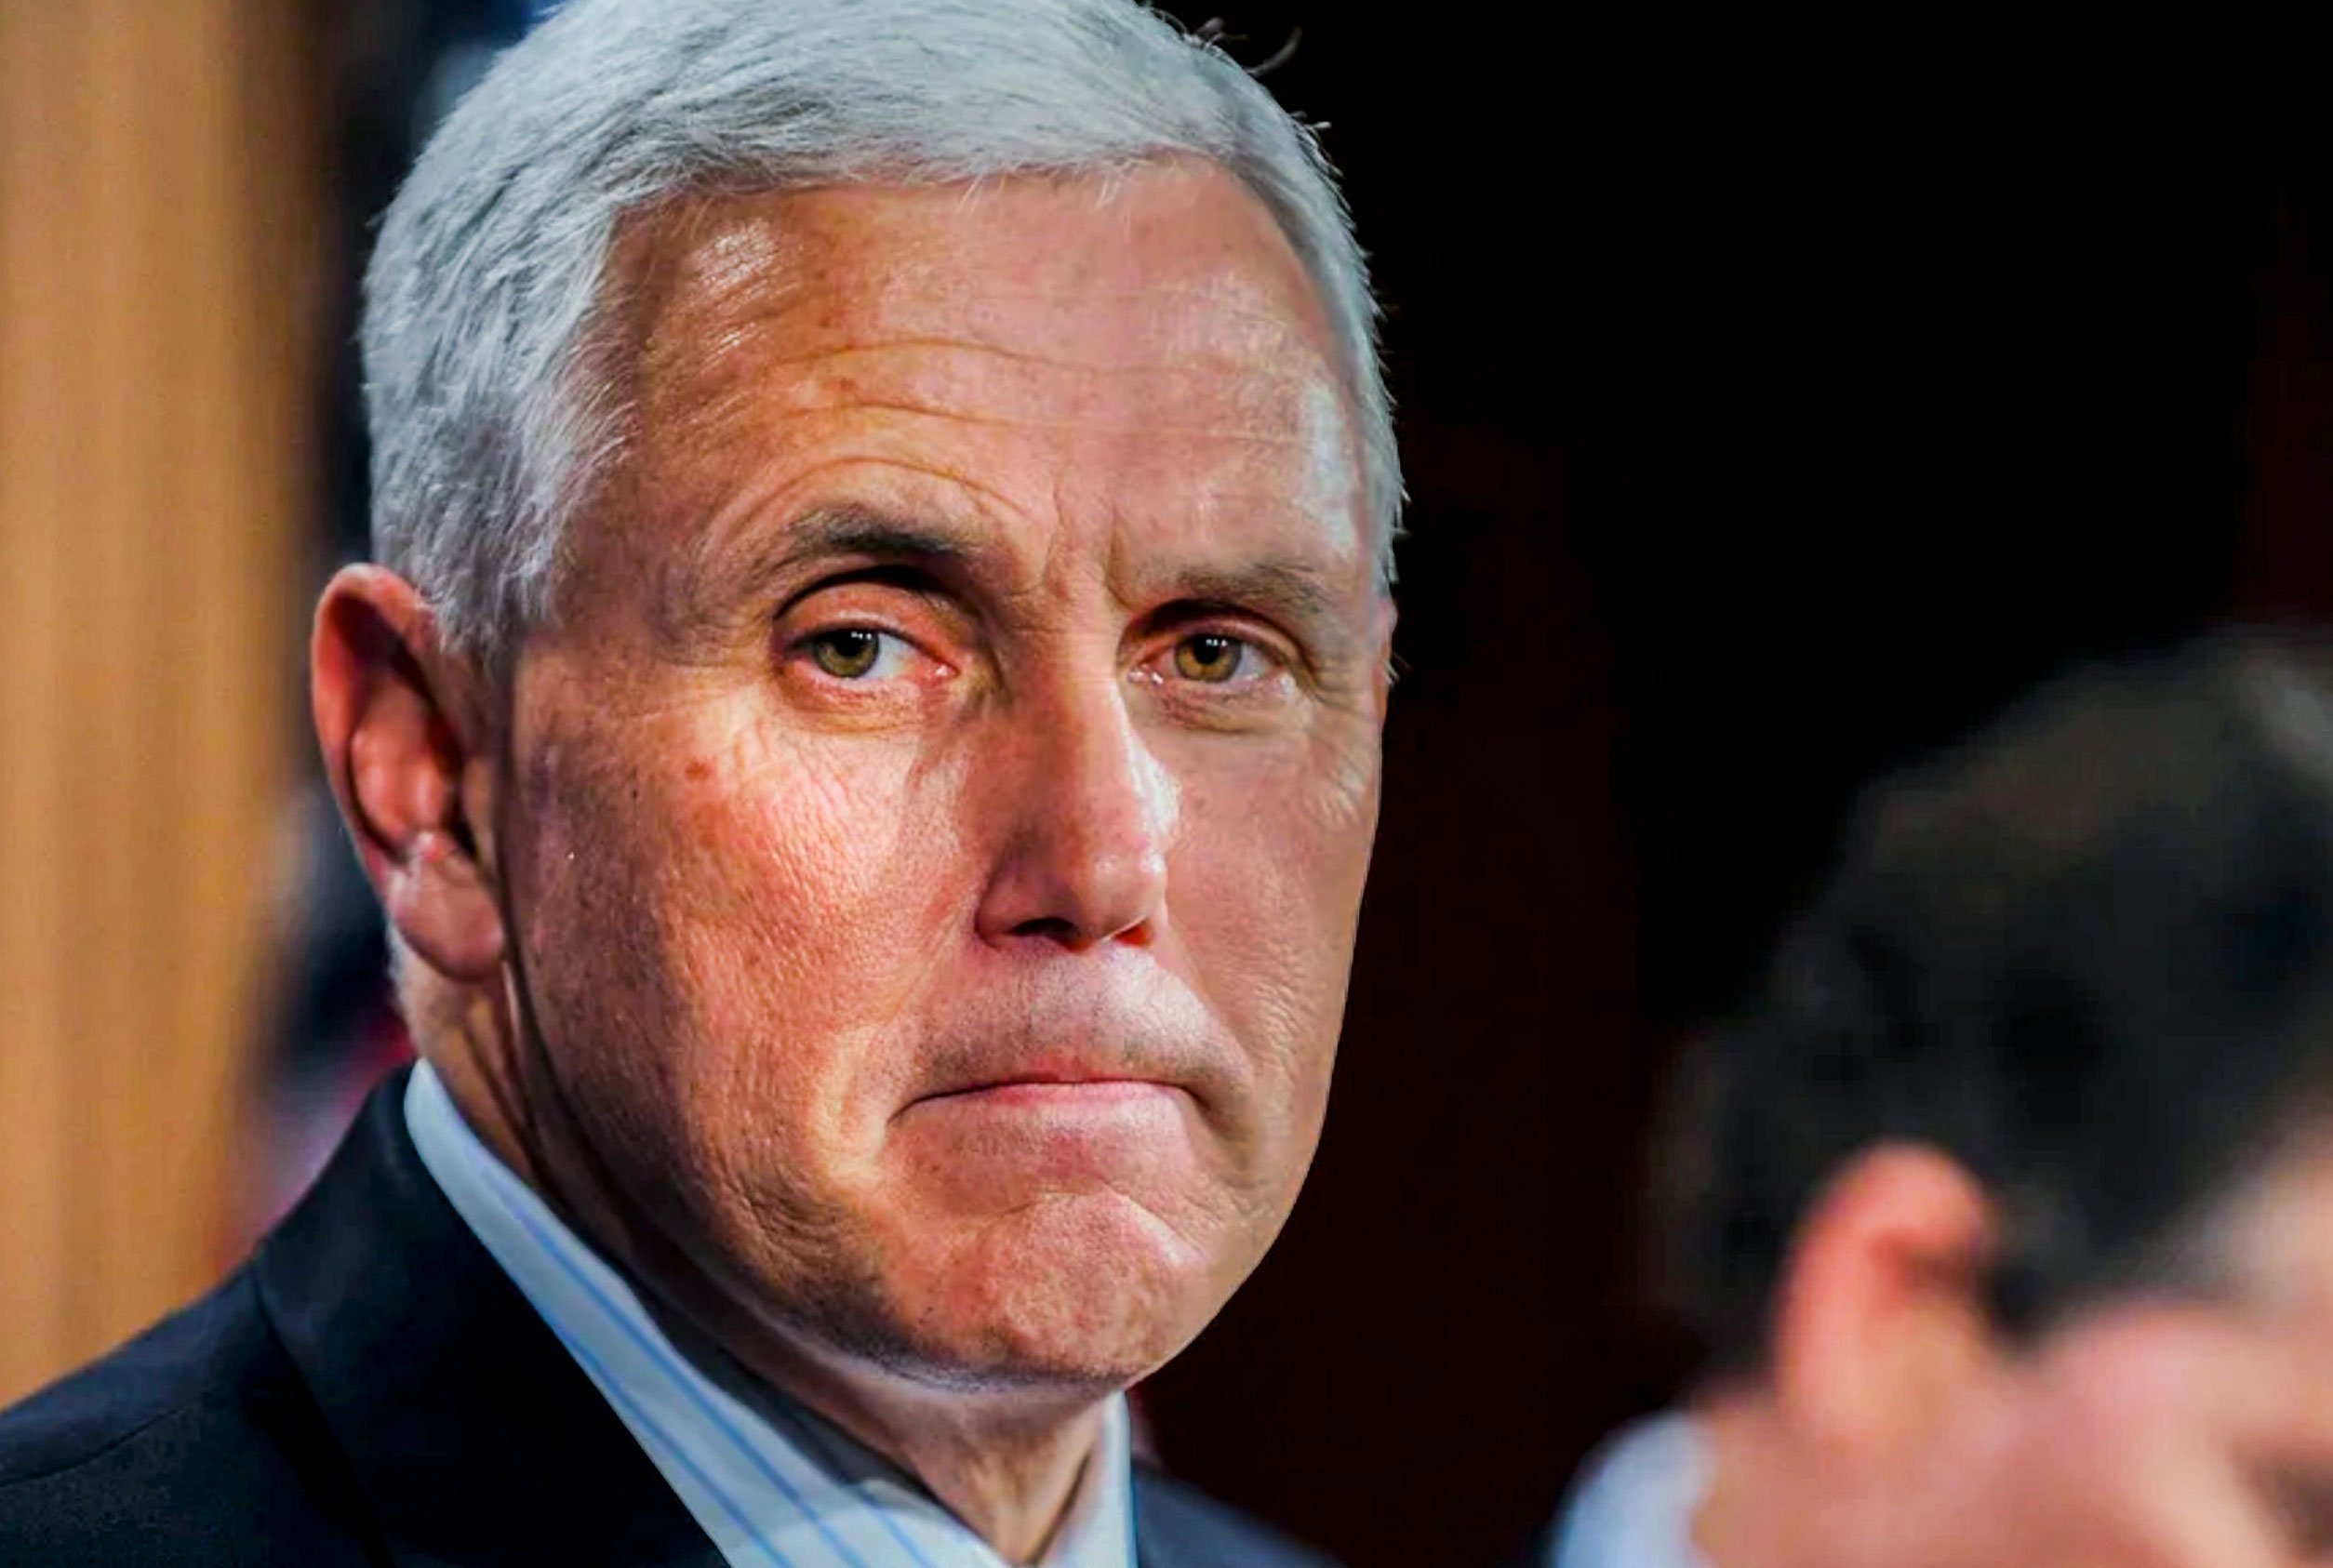 Mike Pence Can't Contain His Lust For Power With This Latest Move